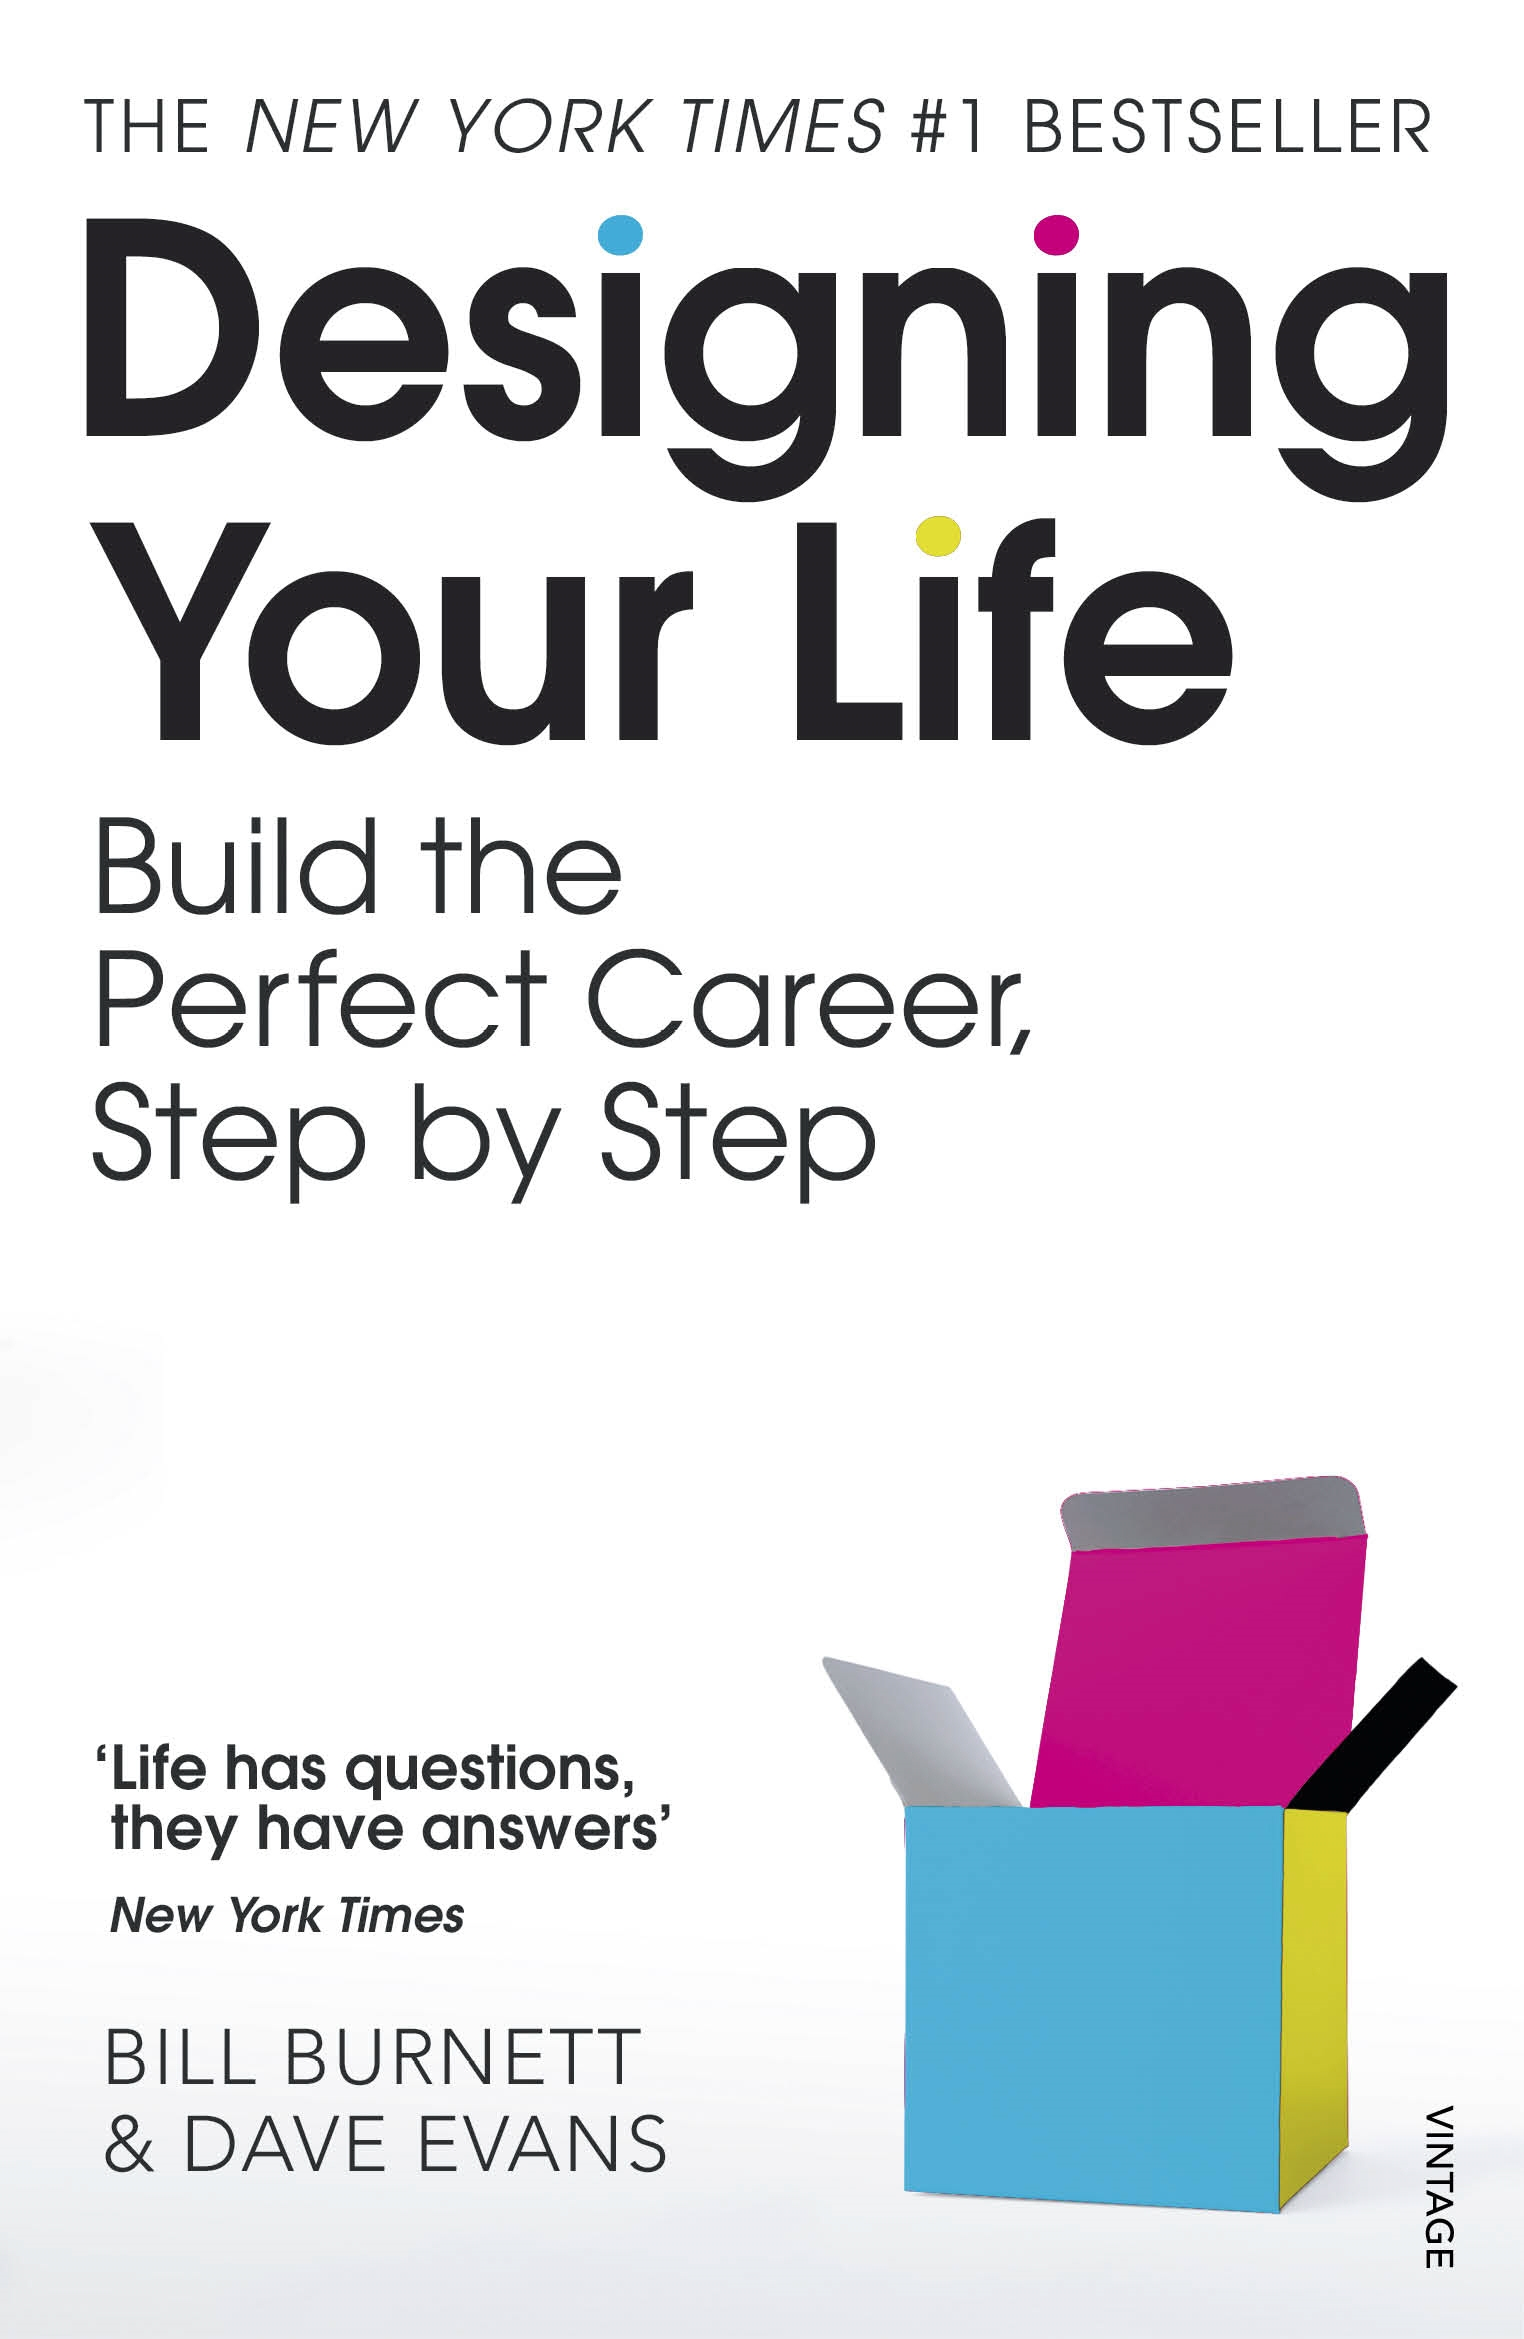 Designing Your Life: Build a Life that Works for You by Bill Burnett, ISBN: 9781784701178